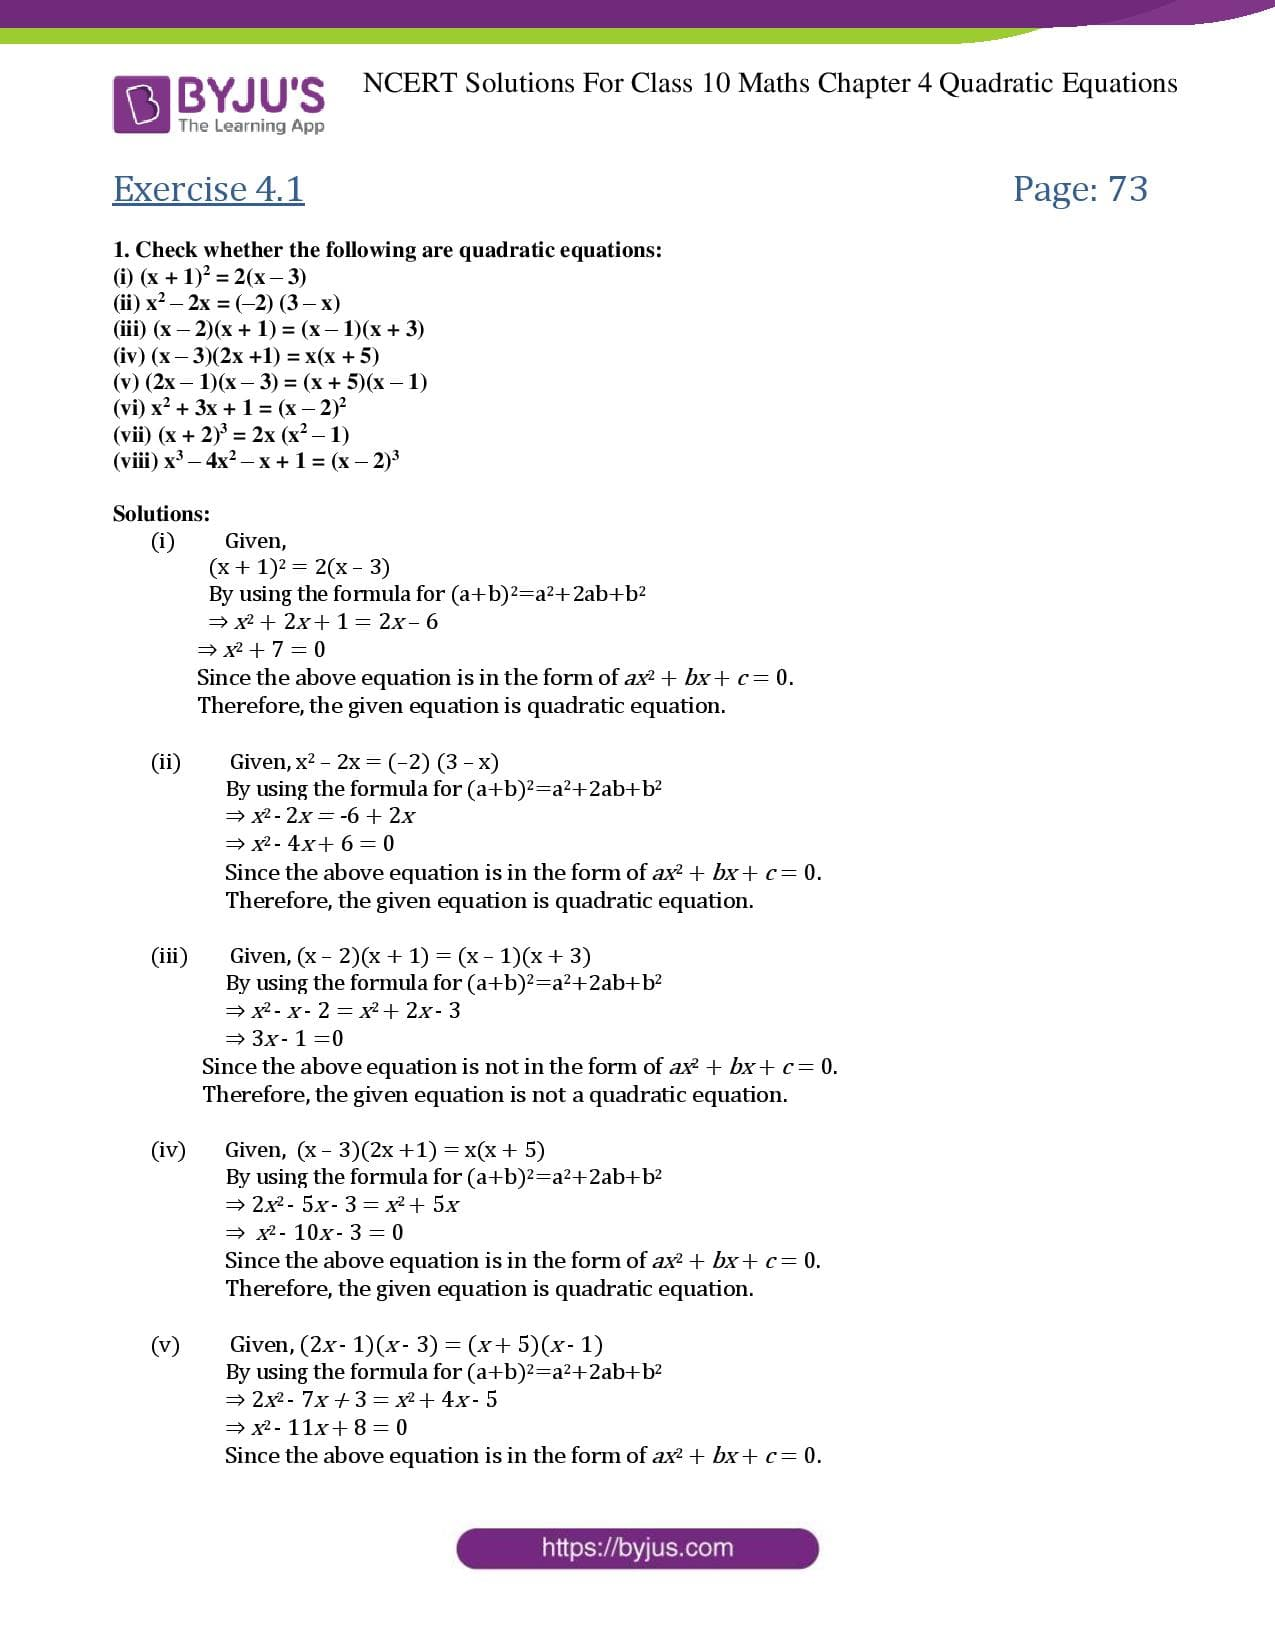 NCERT Solutions Class 10 Maths Chapter 4 Quadratic Equations